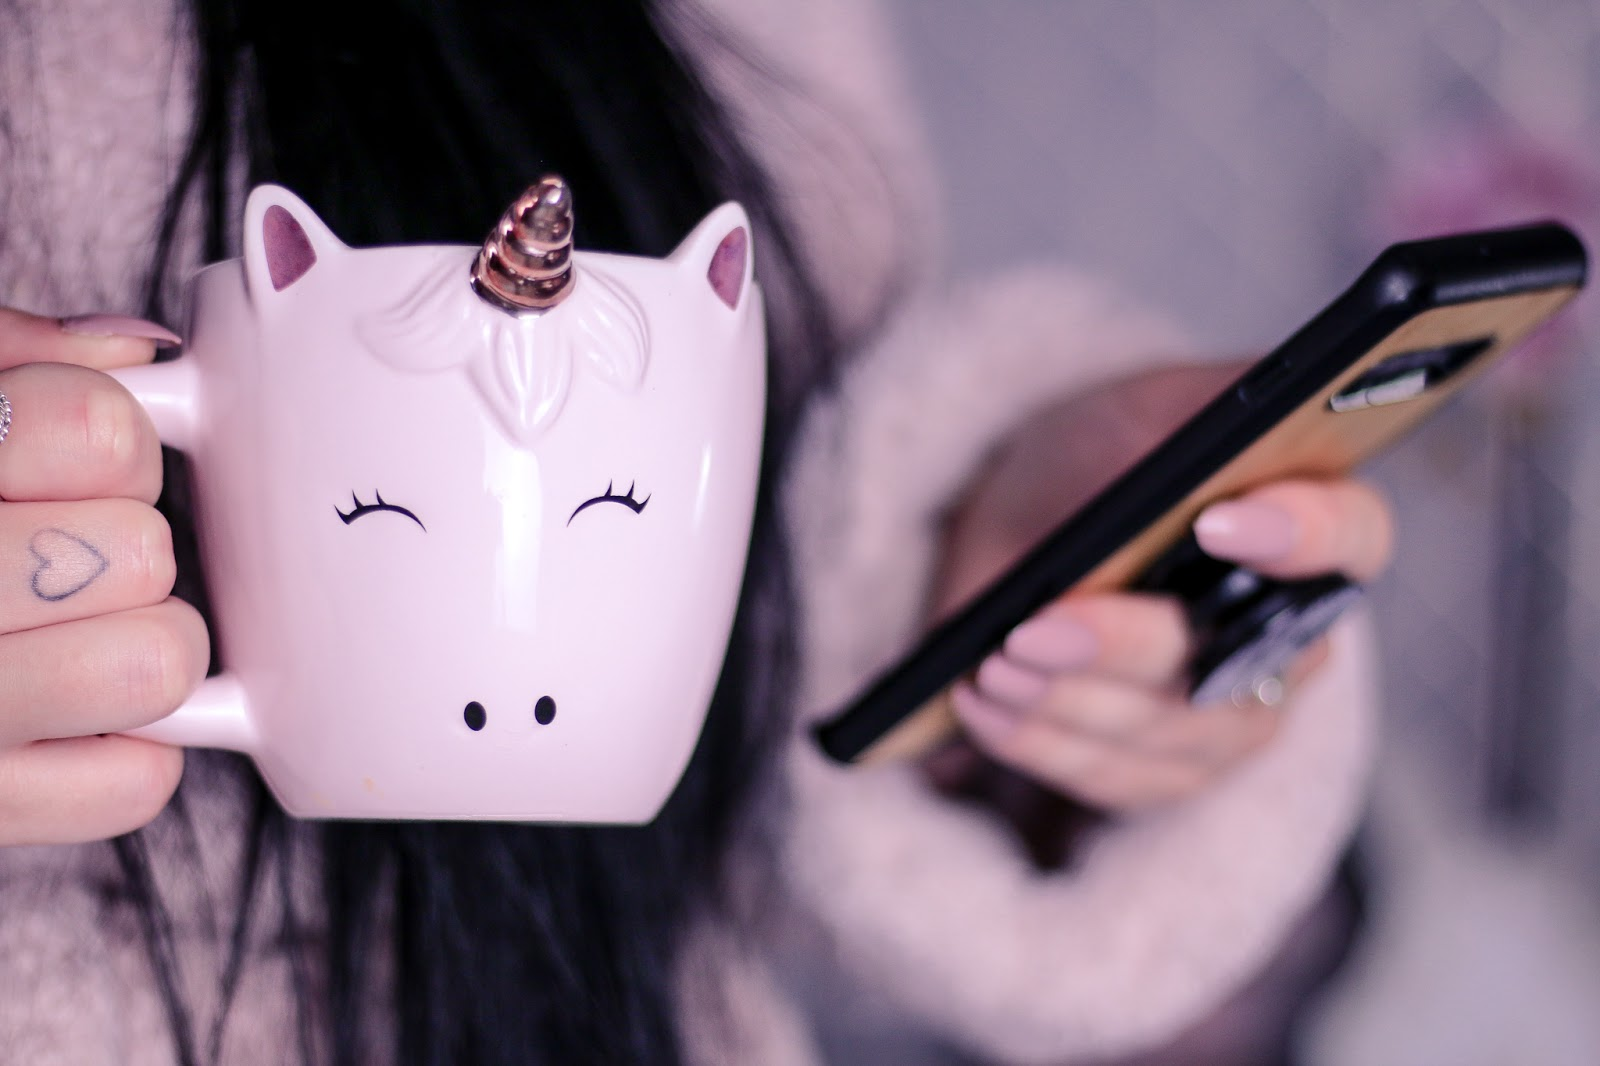 Close up photo of Ofaglasgowgirl in a pink fluffy robe holding a pink unicorn mug and samsung s10+ phone